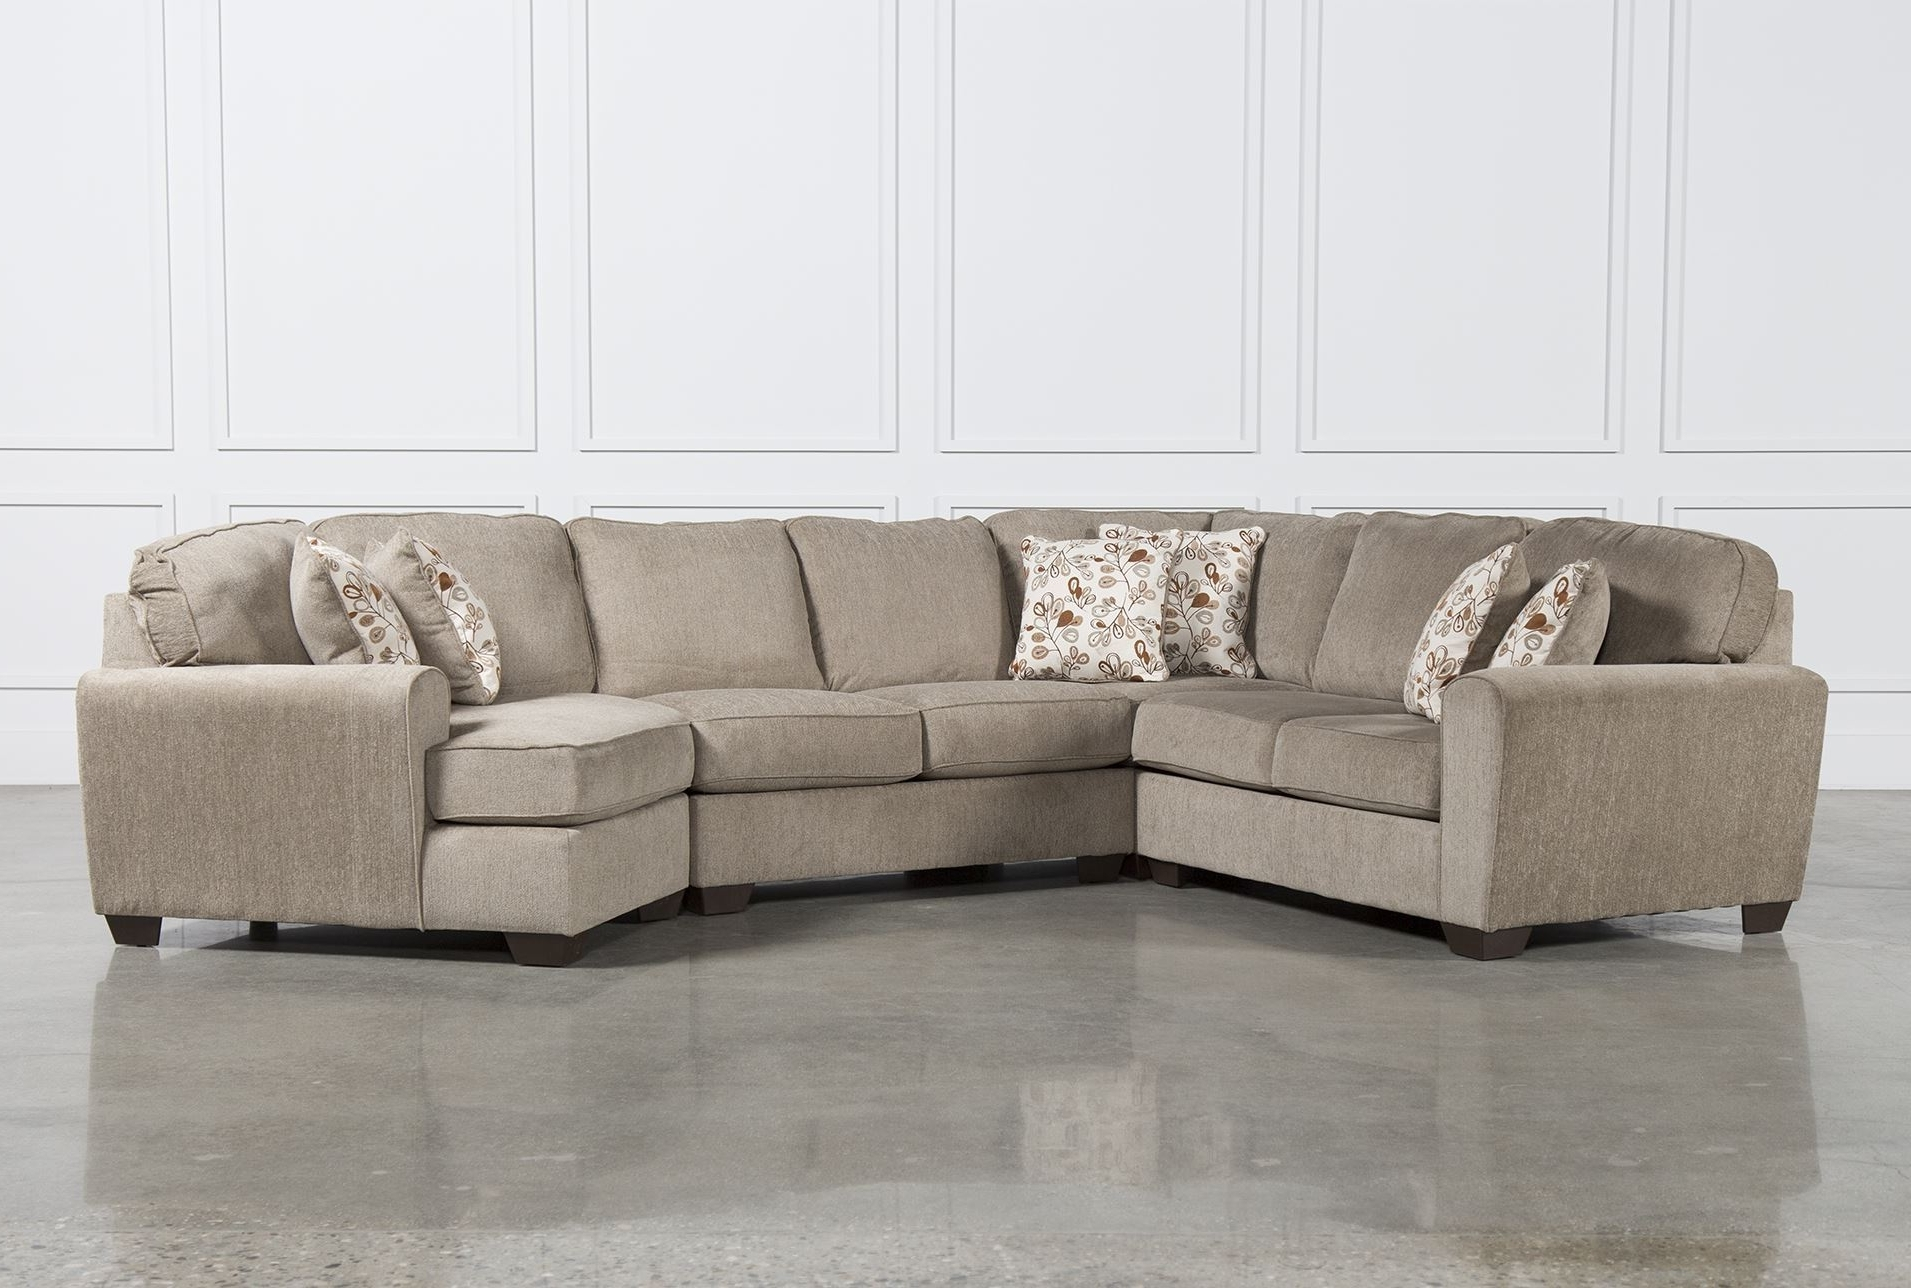 Most Popular Sectional Sofas At Havertys In Havertys Sectional Sofa (View 19 of 20)